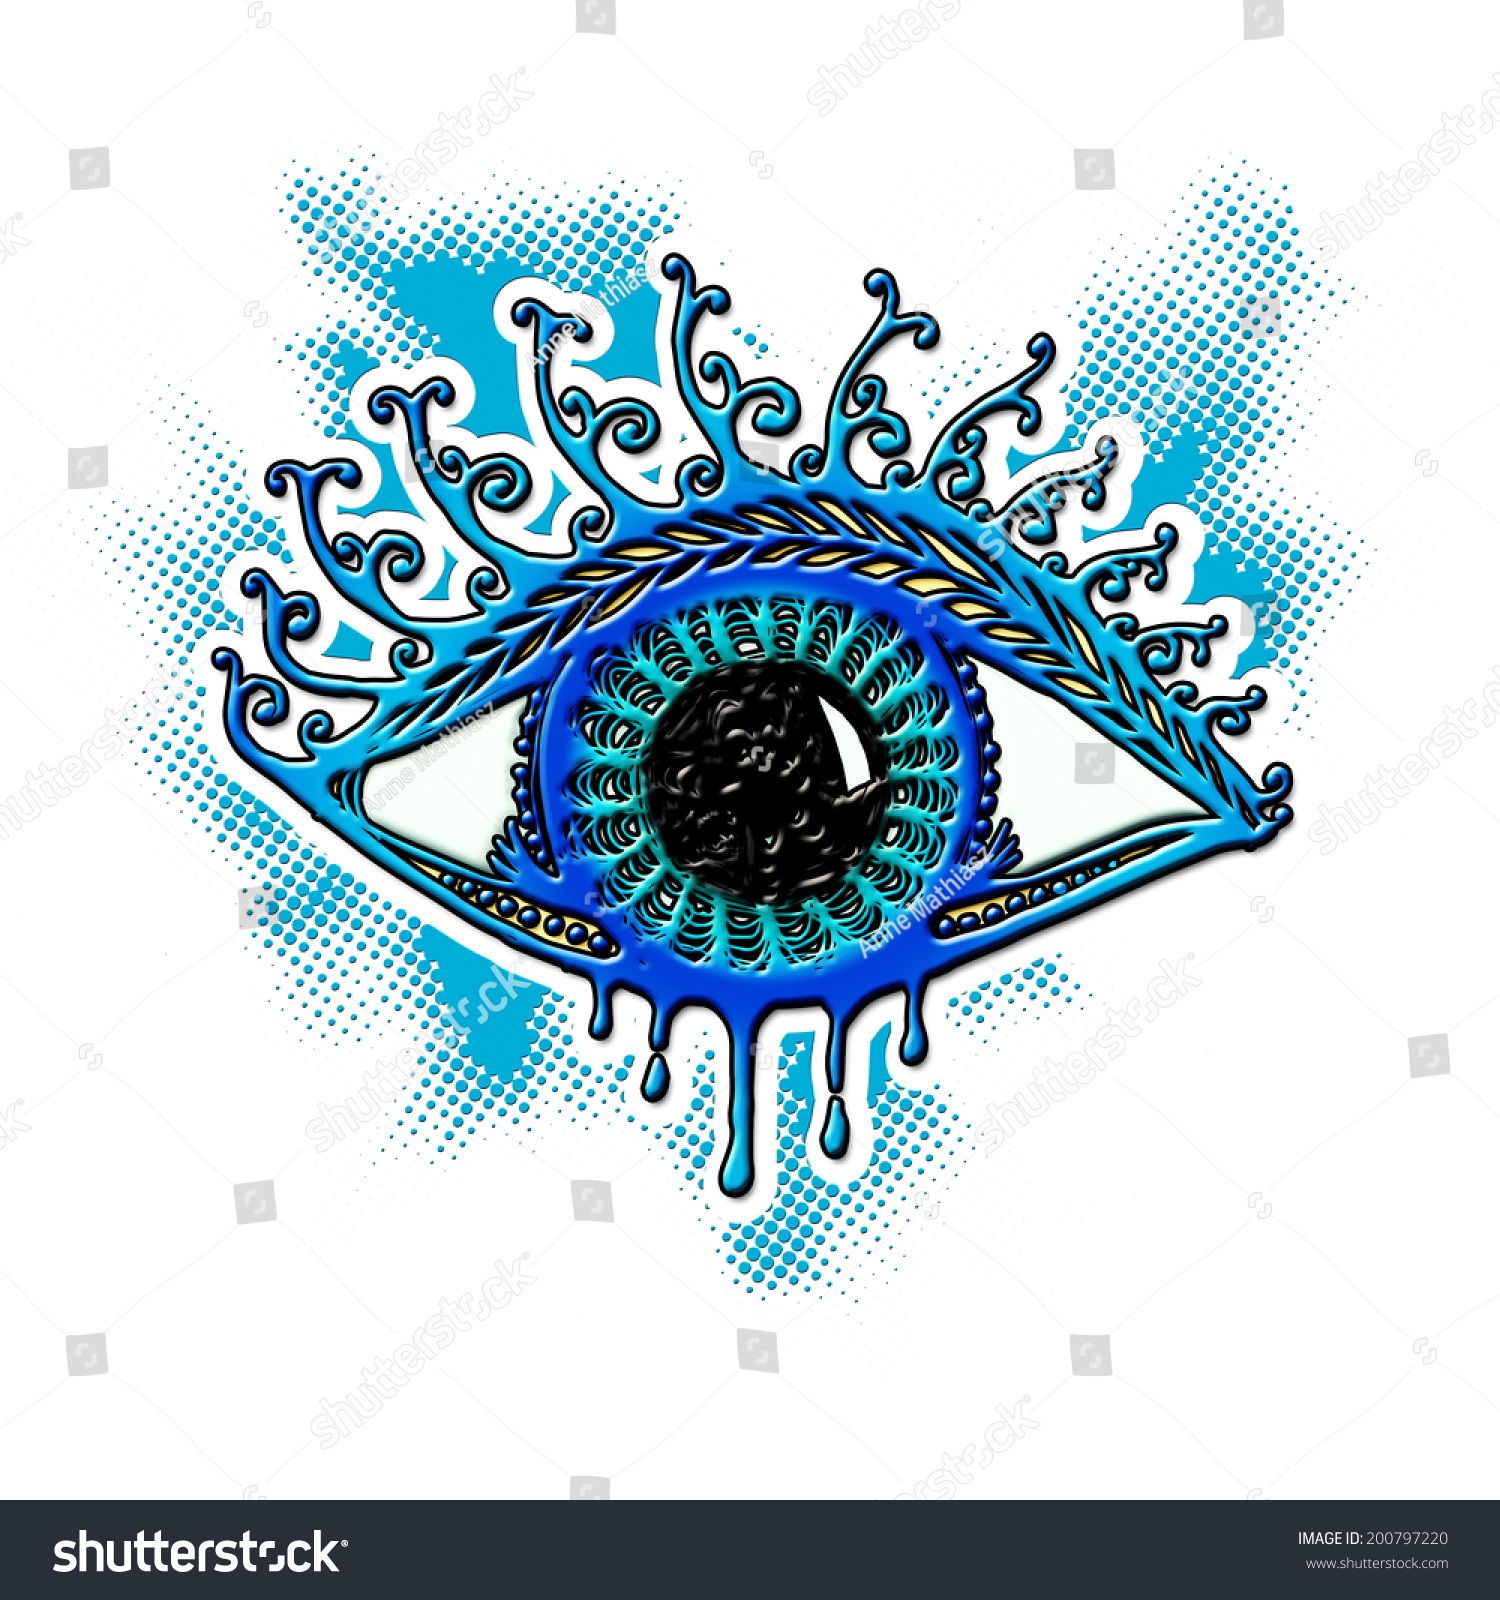 Royalty Free Stock Illustration Of Blue Eye Protection Symbol Evil